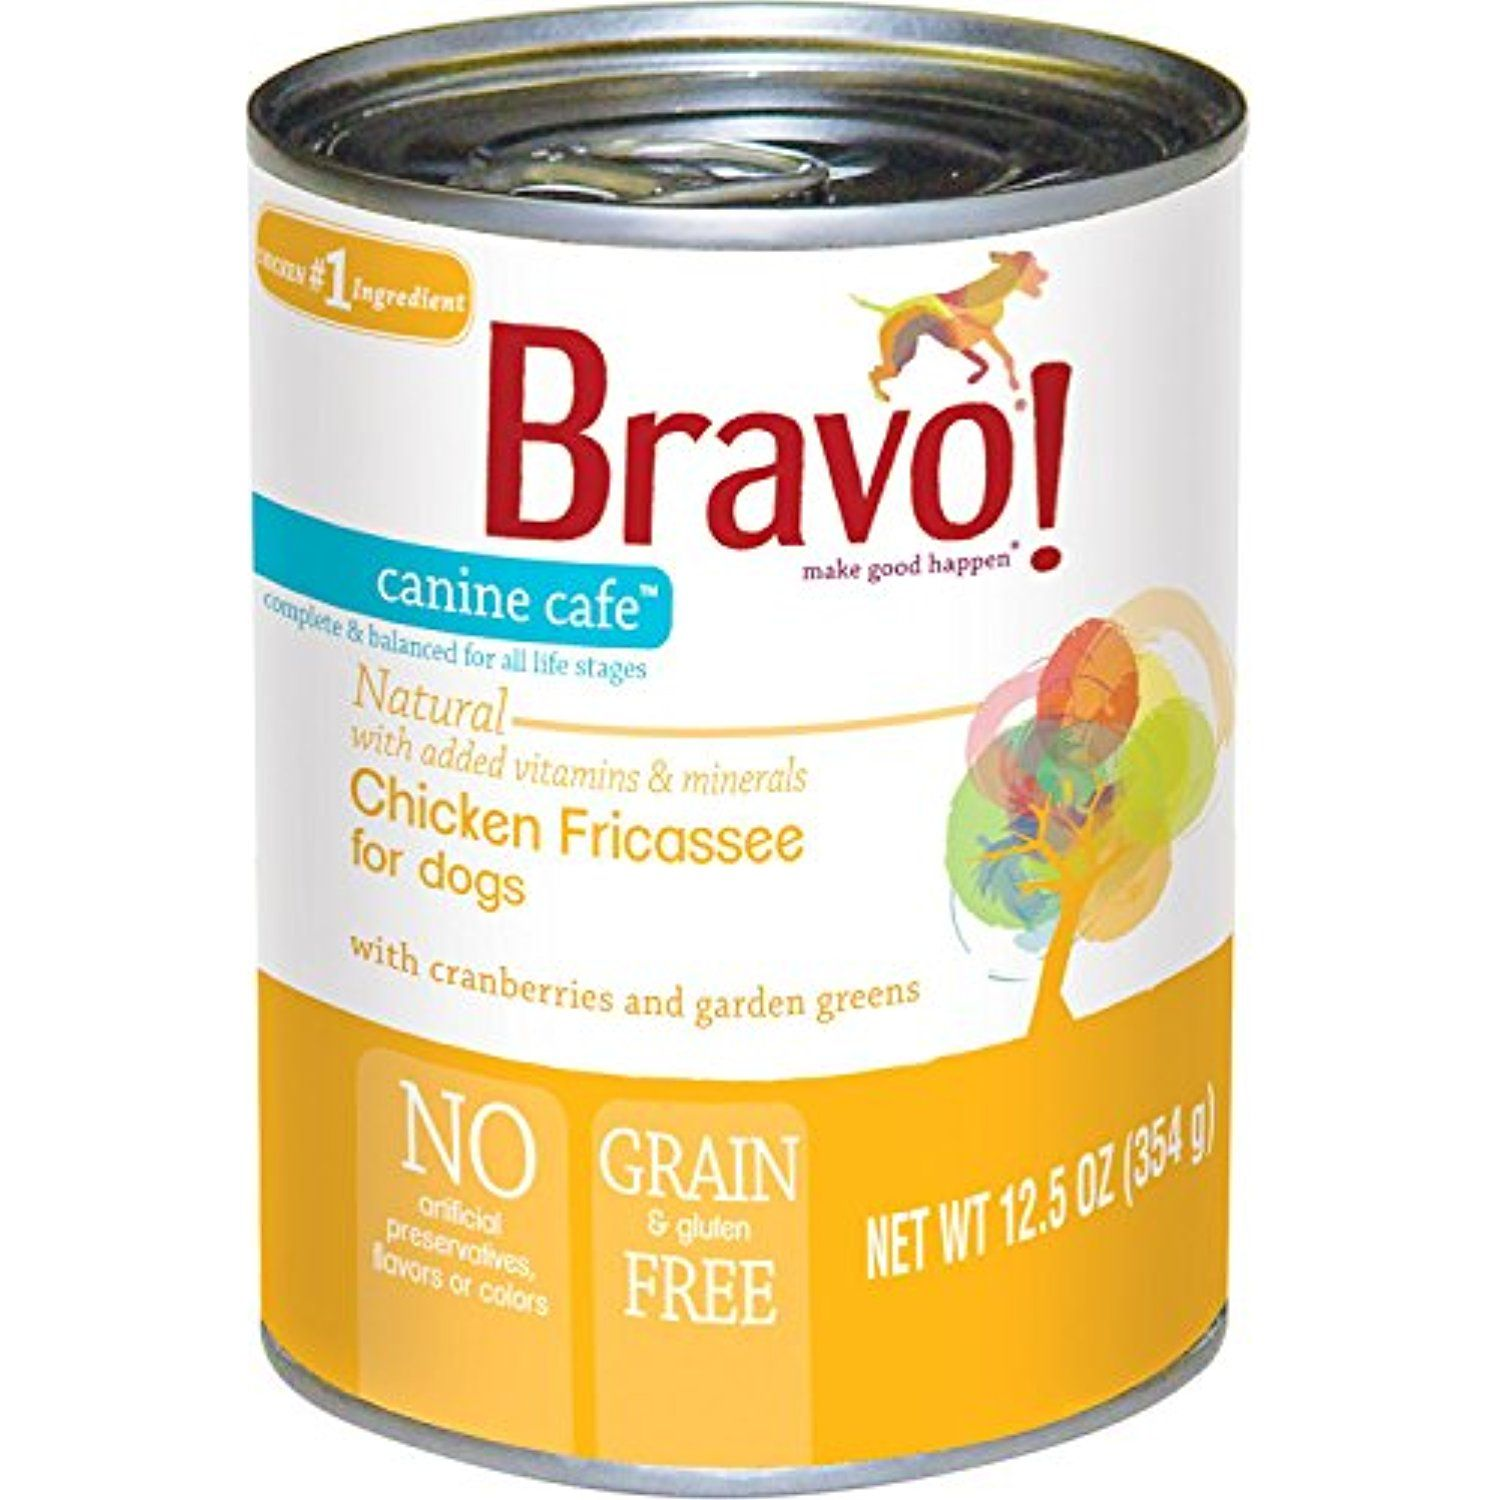 Case Of 12 Bravo Canine Cafe Chicken Fricassee Canned Dog Food